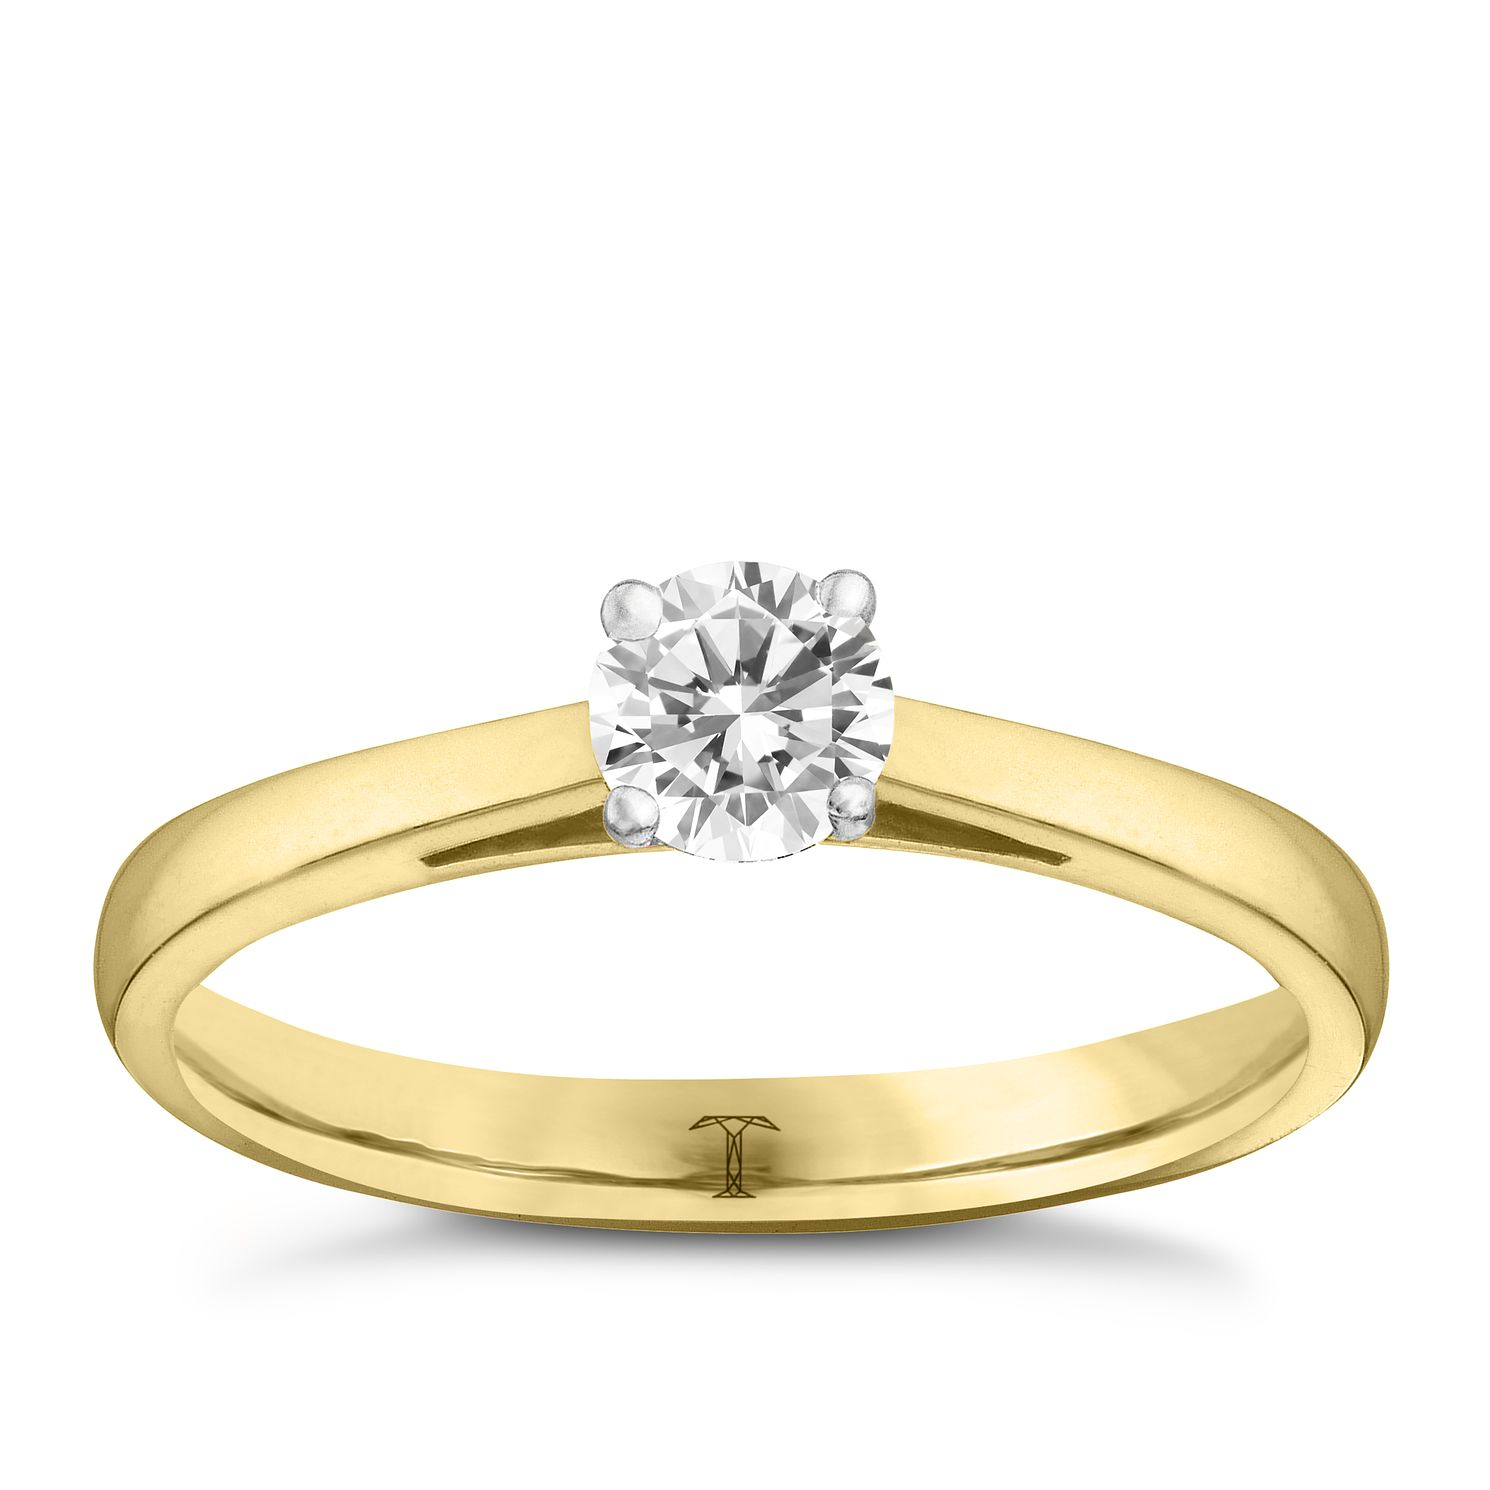 Tolkowsky 18ct Yellow Gold 1/3ct I-I1 Diamond Ring - Product number 8660980